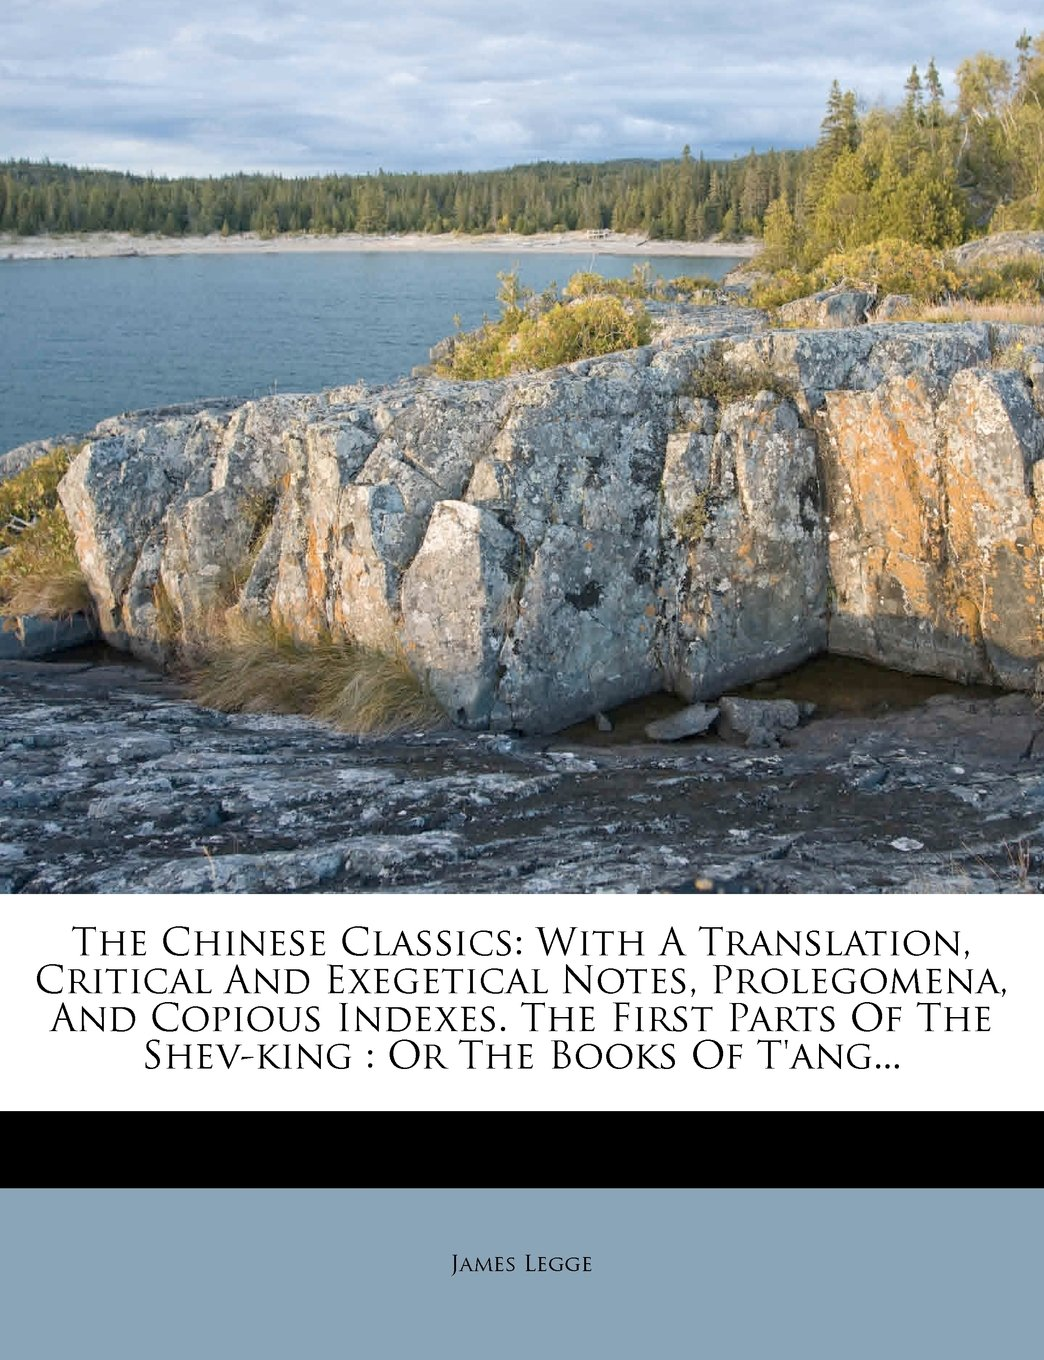 Read Online The Chinese Classics: With A Translation, Critical And Exegetical Notes, Prolegomena, And Copious Indexes. The First Parts Of The Shev-king : Or The Books Of T'ang... pdf epub